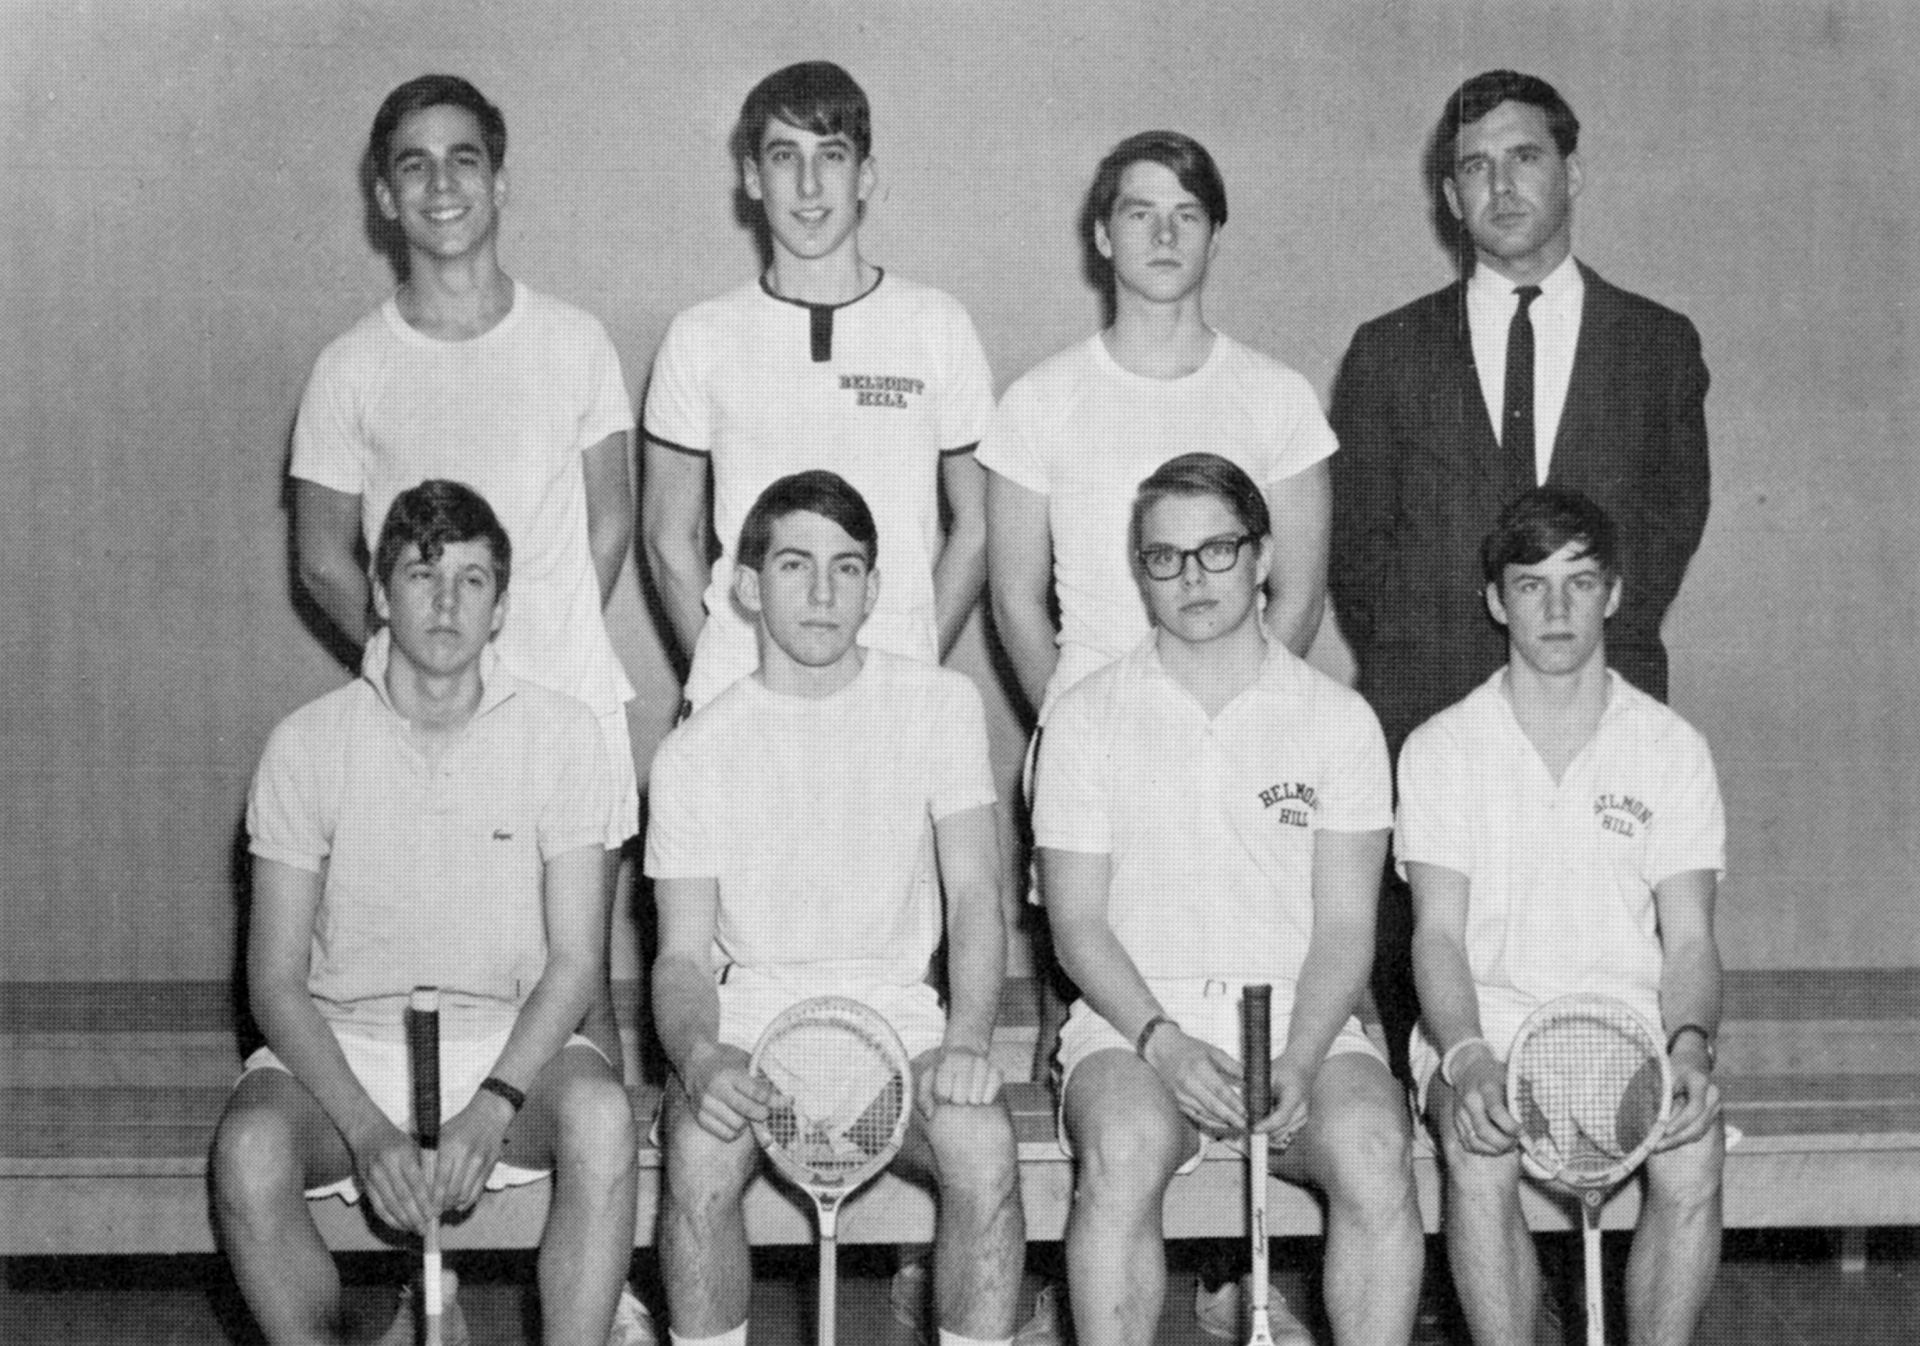 First Row: Shaw, Downes, Fitzgerald, Henderson,  Second Row: Coleman, D. Leventhal, Howe, Mr. Seeley